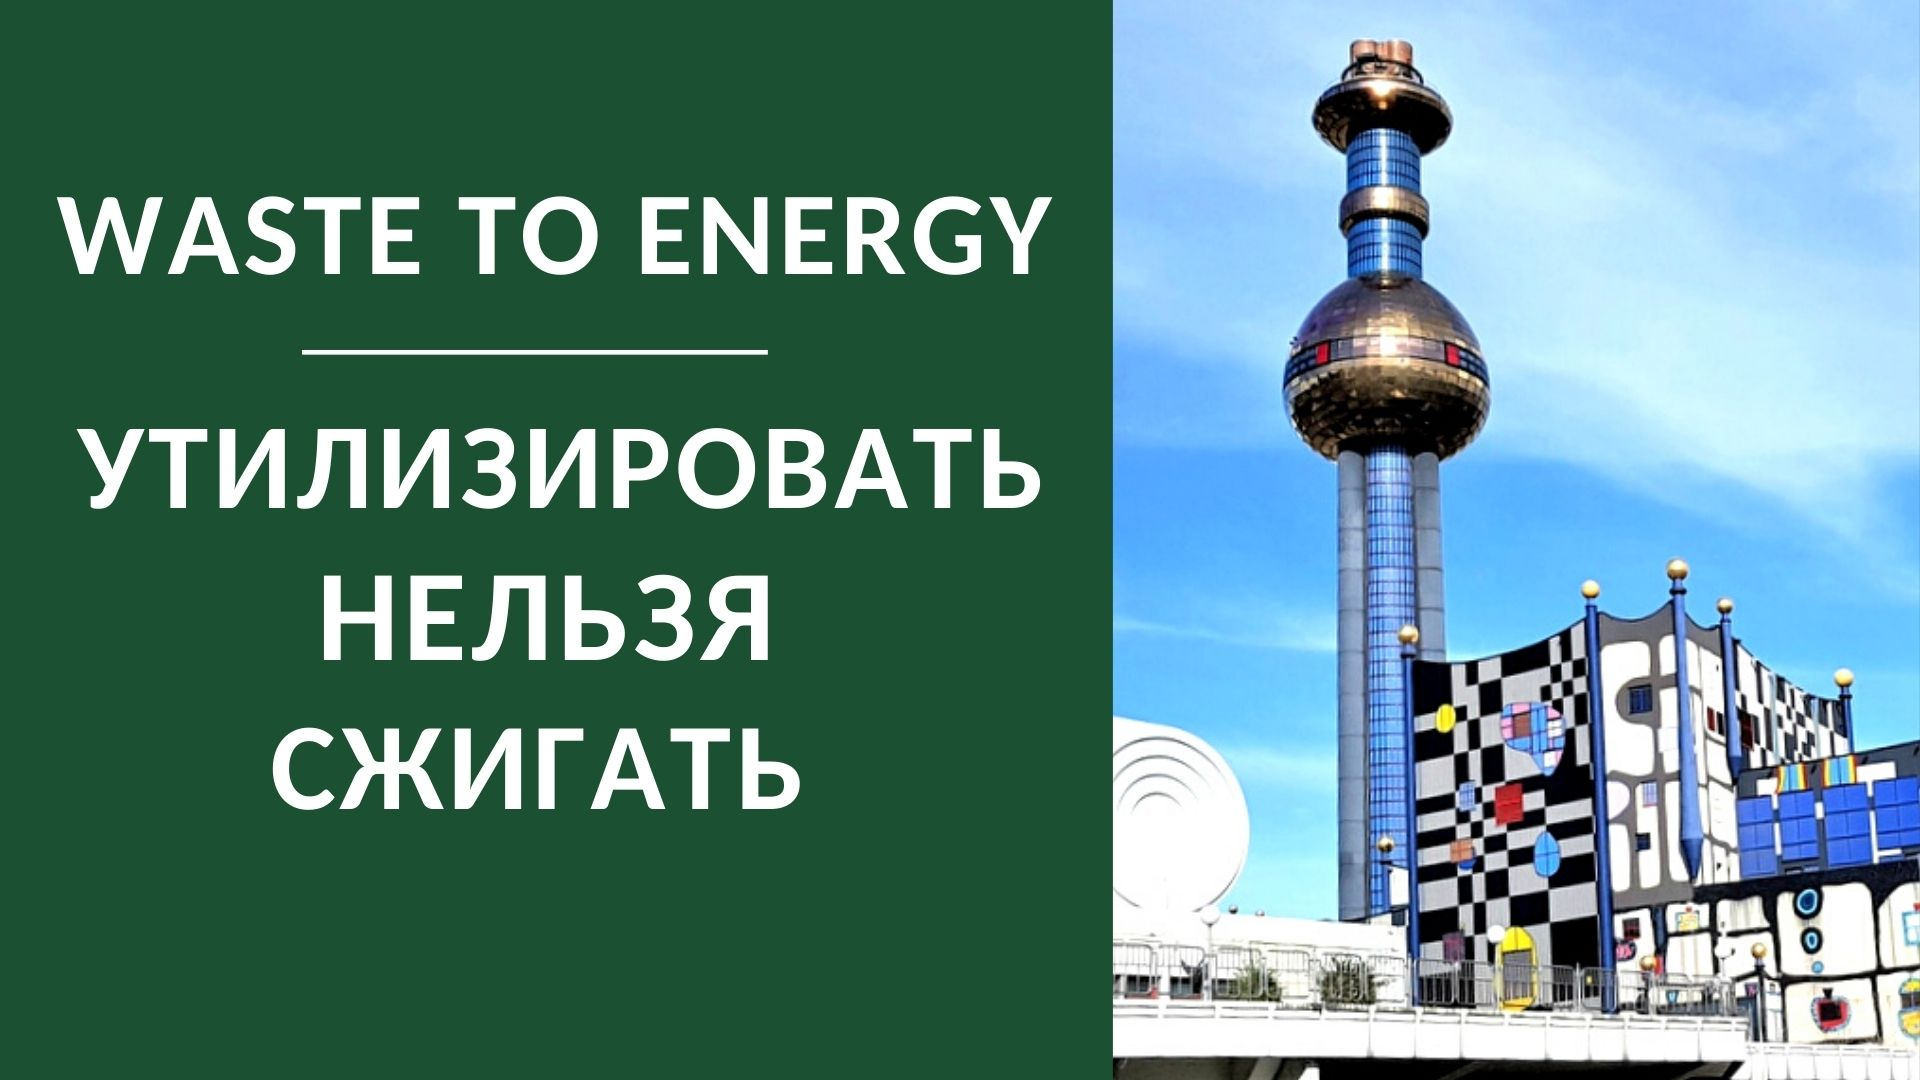 WASTE TO ENERGY: УТИЛИЗИРОВАТЬ НЕЛЬЗЯ СЖИГАТЬ